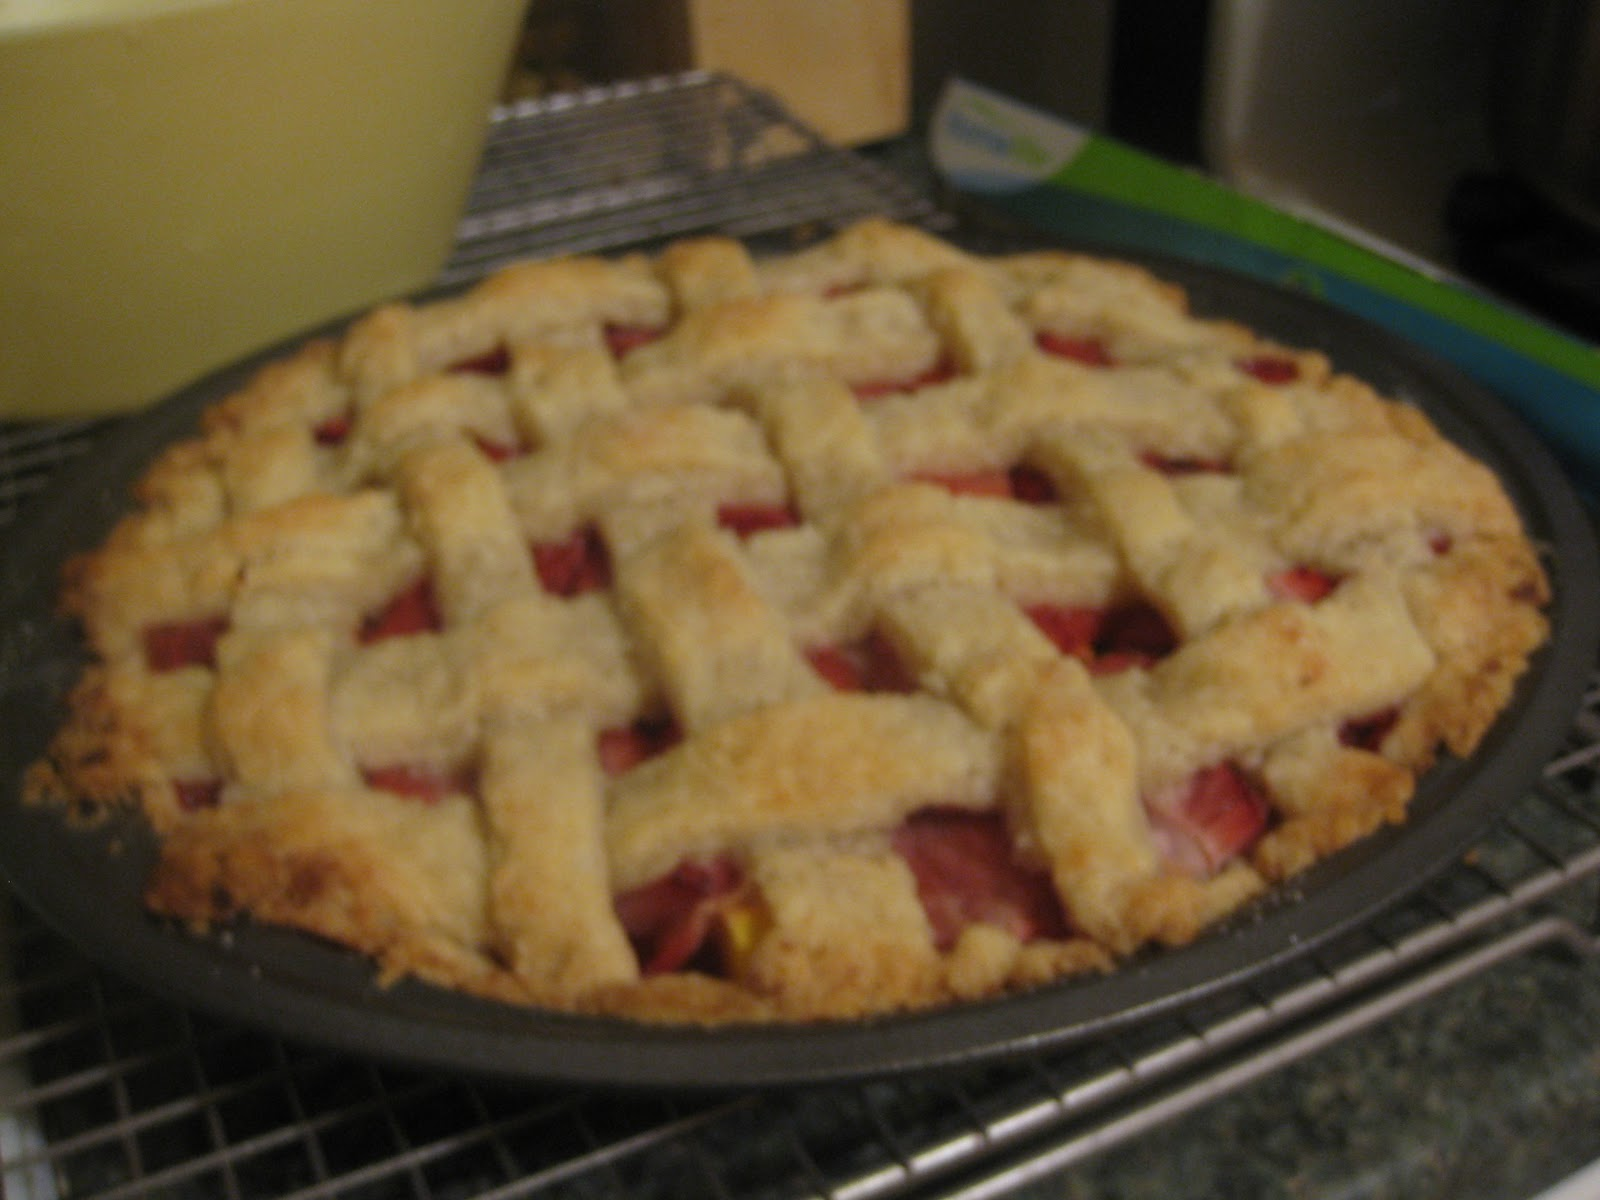 You Bake Me Crazy: Strawberry-Mango Pie